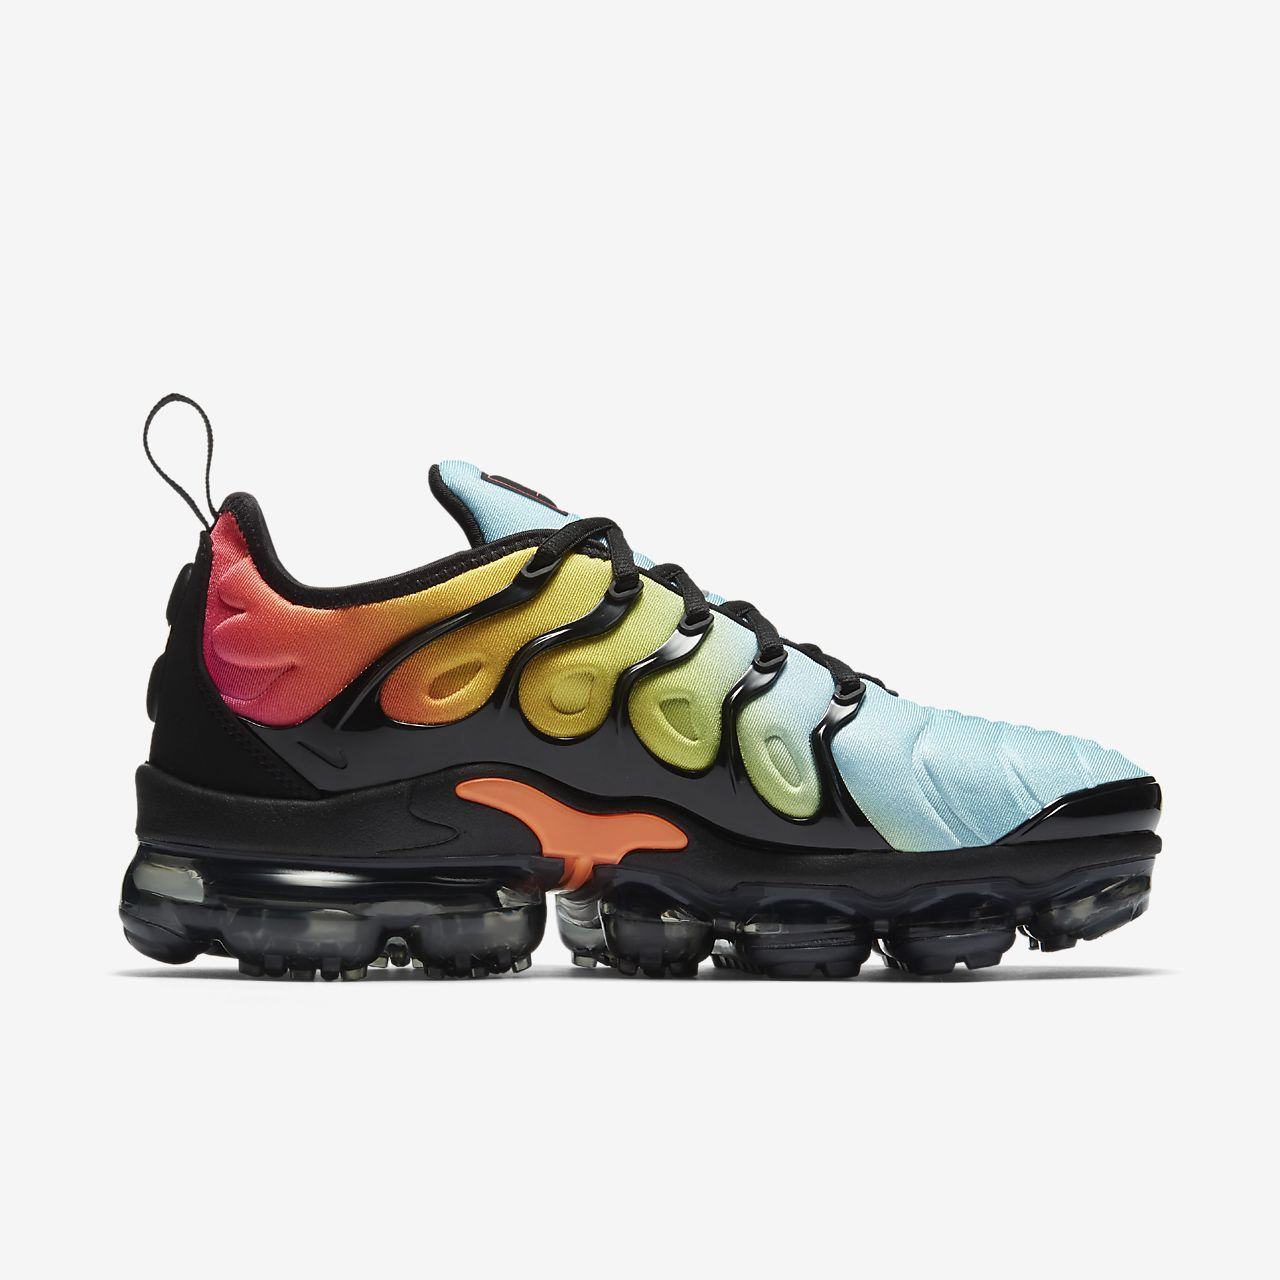 377ba64d3e9273 Air VaporMax Plus Women s Shoe in 2019